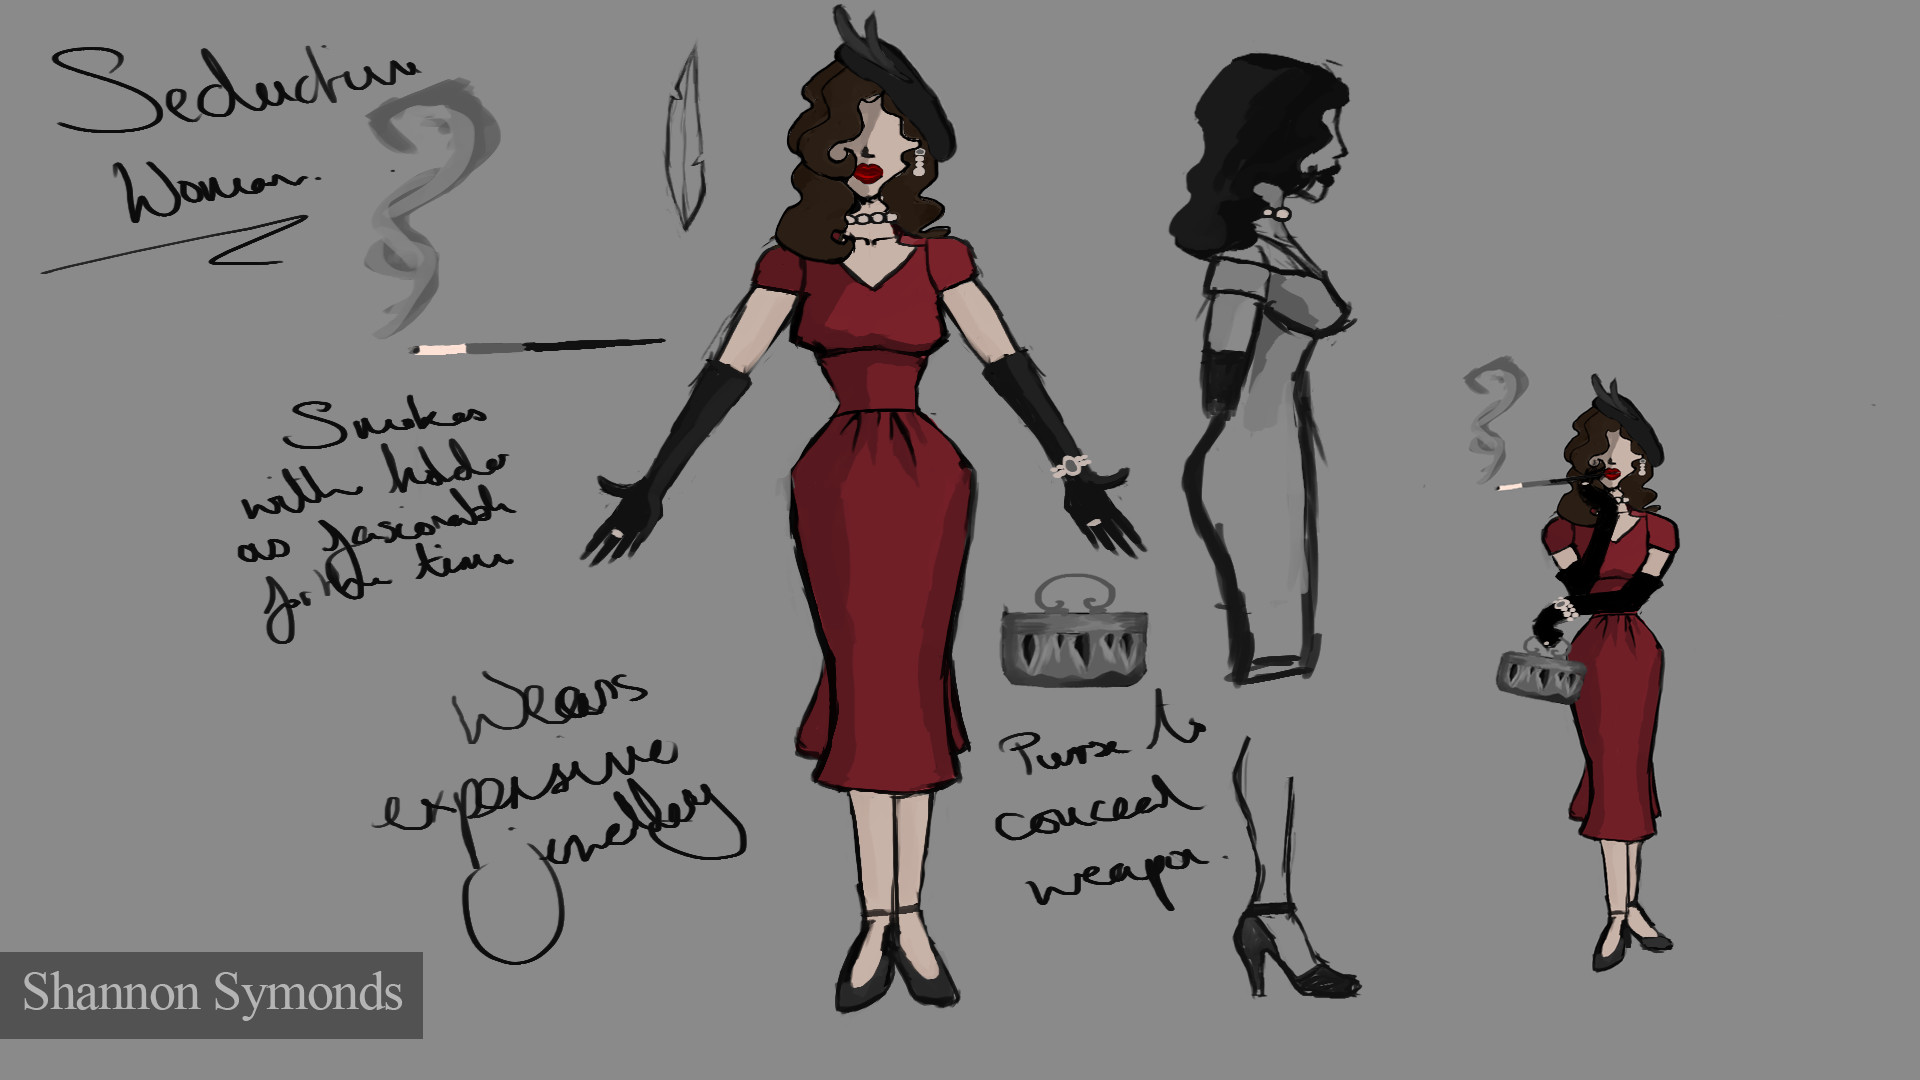 Original concept sketch. Received feedback during the modeling process that the character looked better black and white.